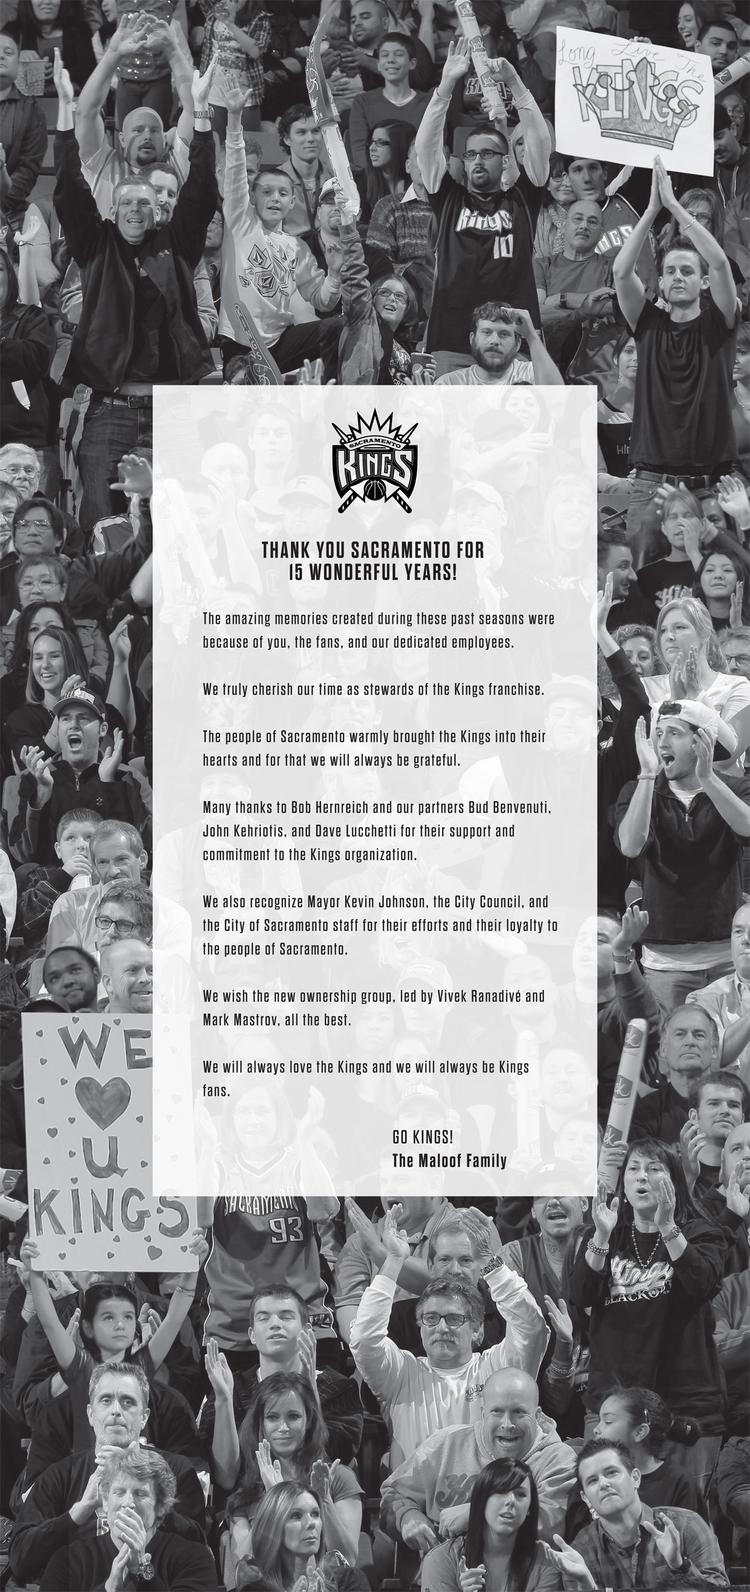 The Maloof family thanked Sacramento Kings fans in a full-page ad in the Sacramento Bee. But Kings fans have already moved on from the Maloofs, and there wasn't a ton of reaction on Twitter. The former owners of the NBA team have not been fan favorites through the last couple of years of turmoil of trying to sell and move the Kings.